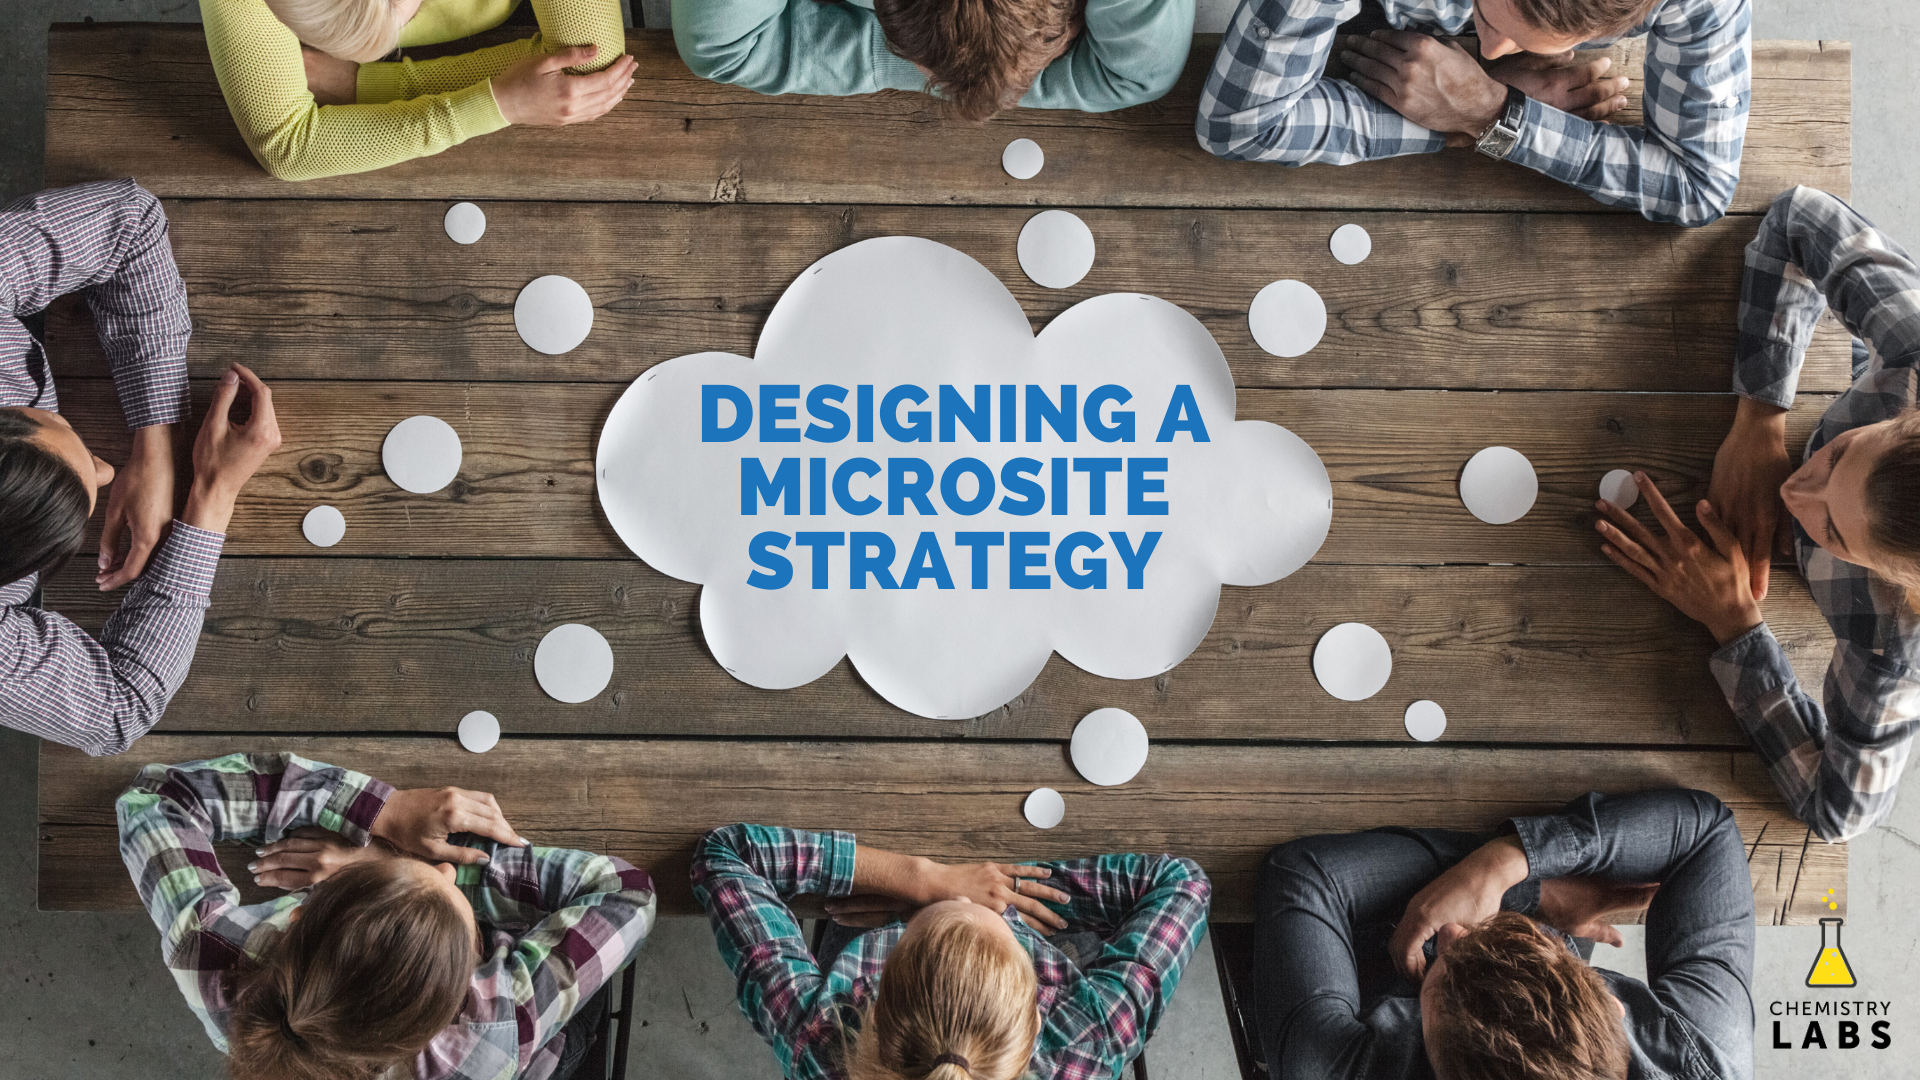 DESIGNING A MICROSITE STRATEGY (1)